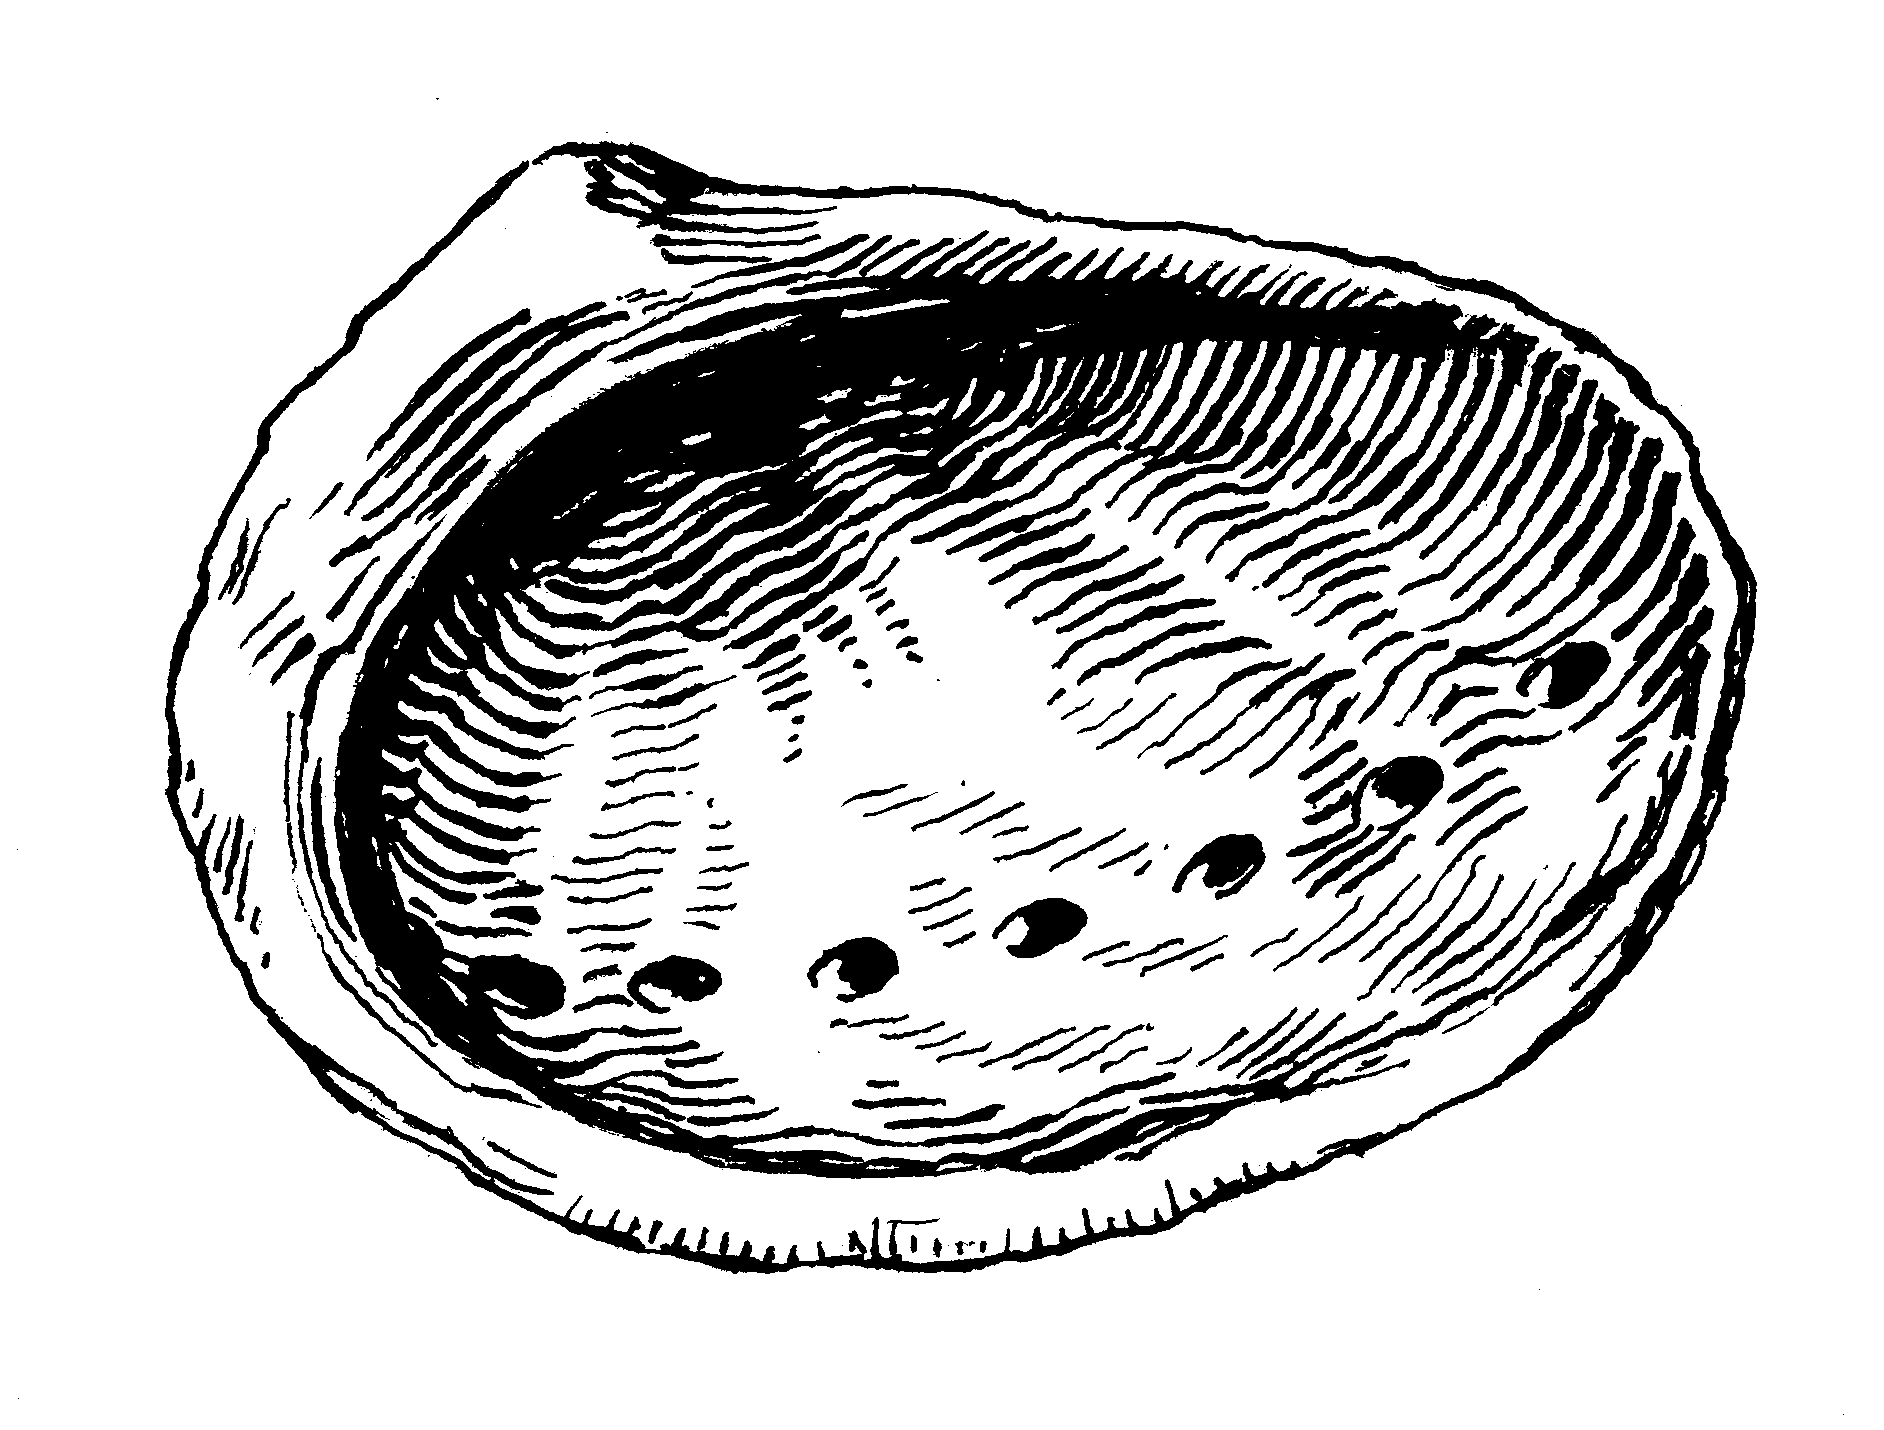 Drawn shell outline Abalone: an to Steps Draw